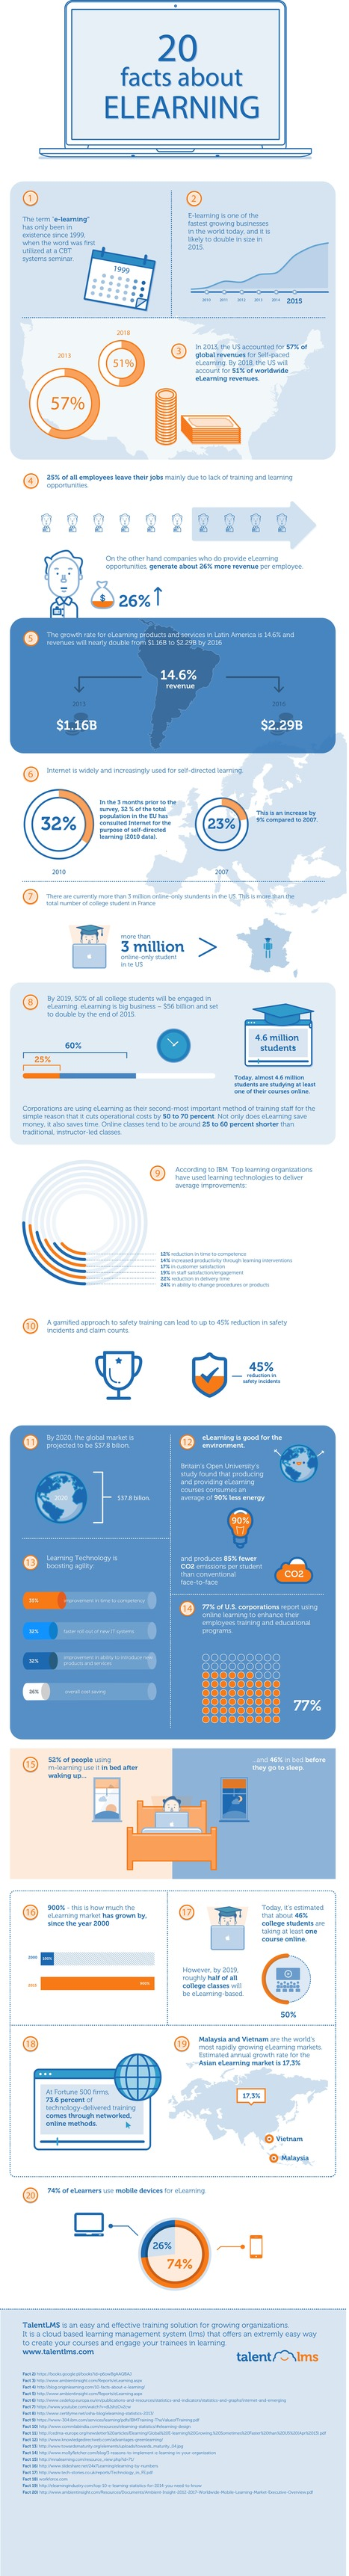 20 Facts About the Impact of E-Learning [#Infographic] | Alive classroom | Scoop.it